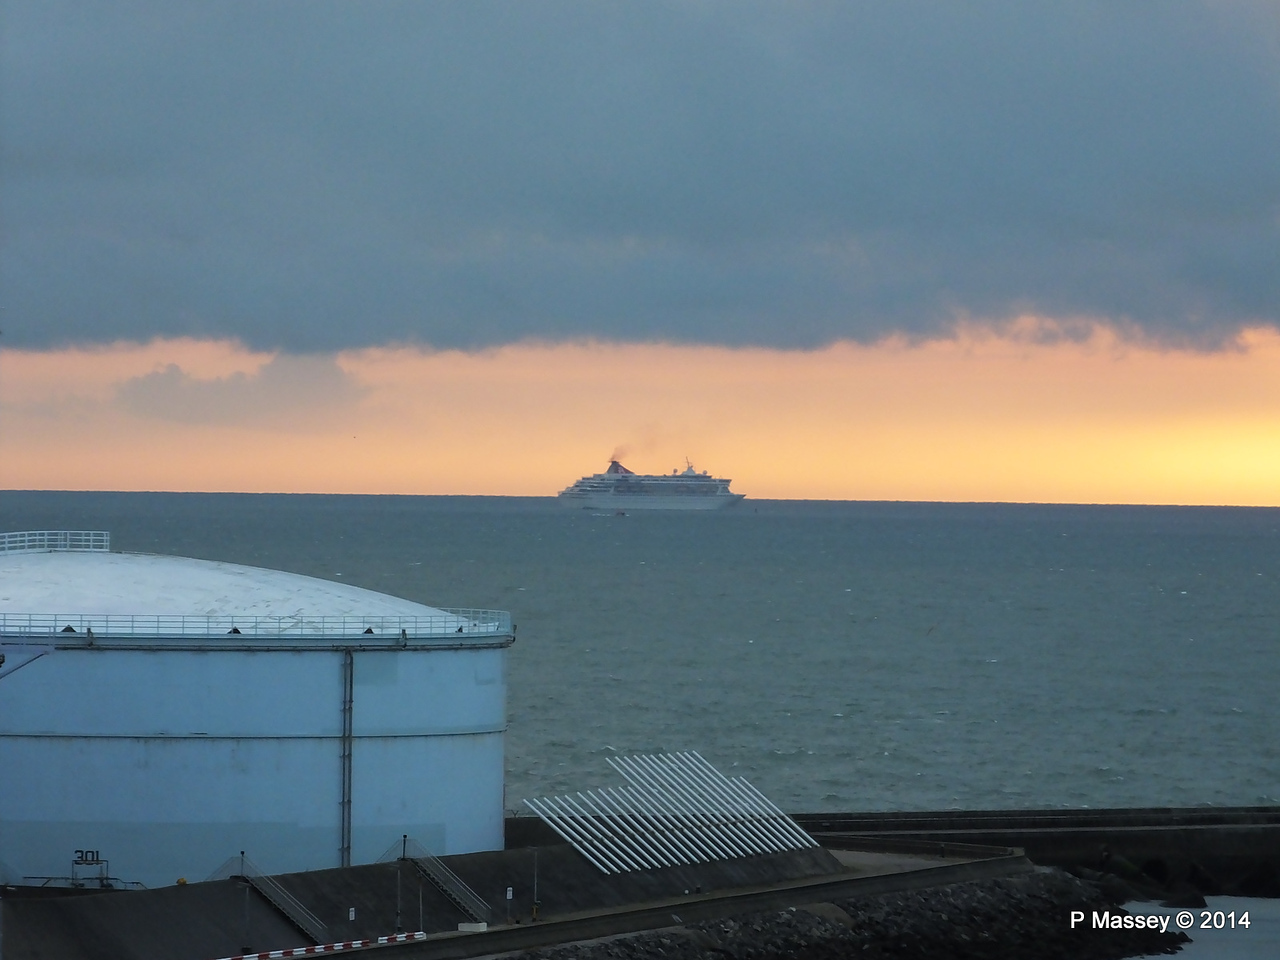 BALMORAL Passing Le Havre from Rouen to La Pallice PDM 06-10-2014 18-15-49